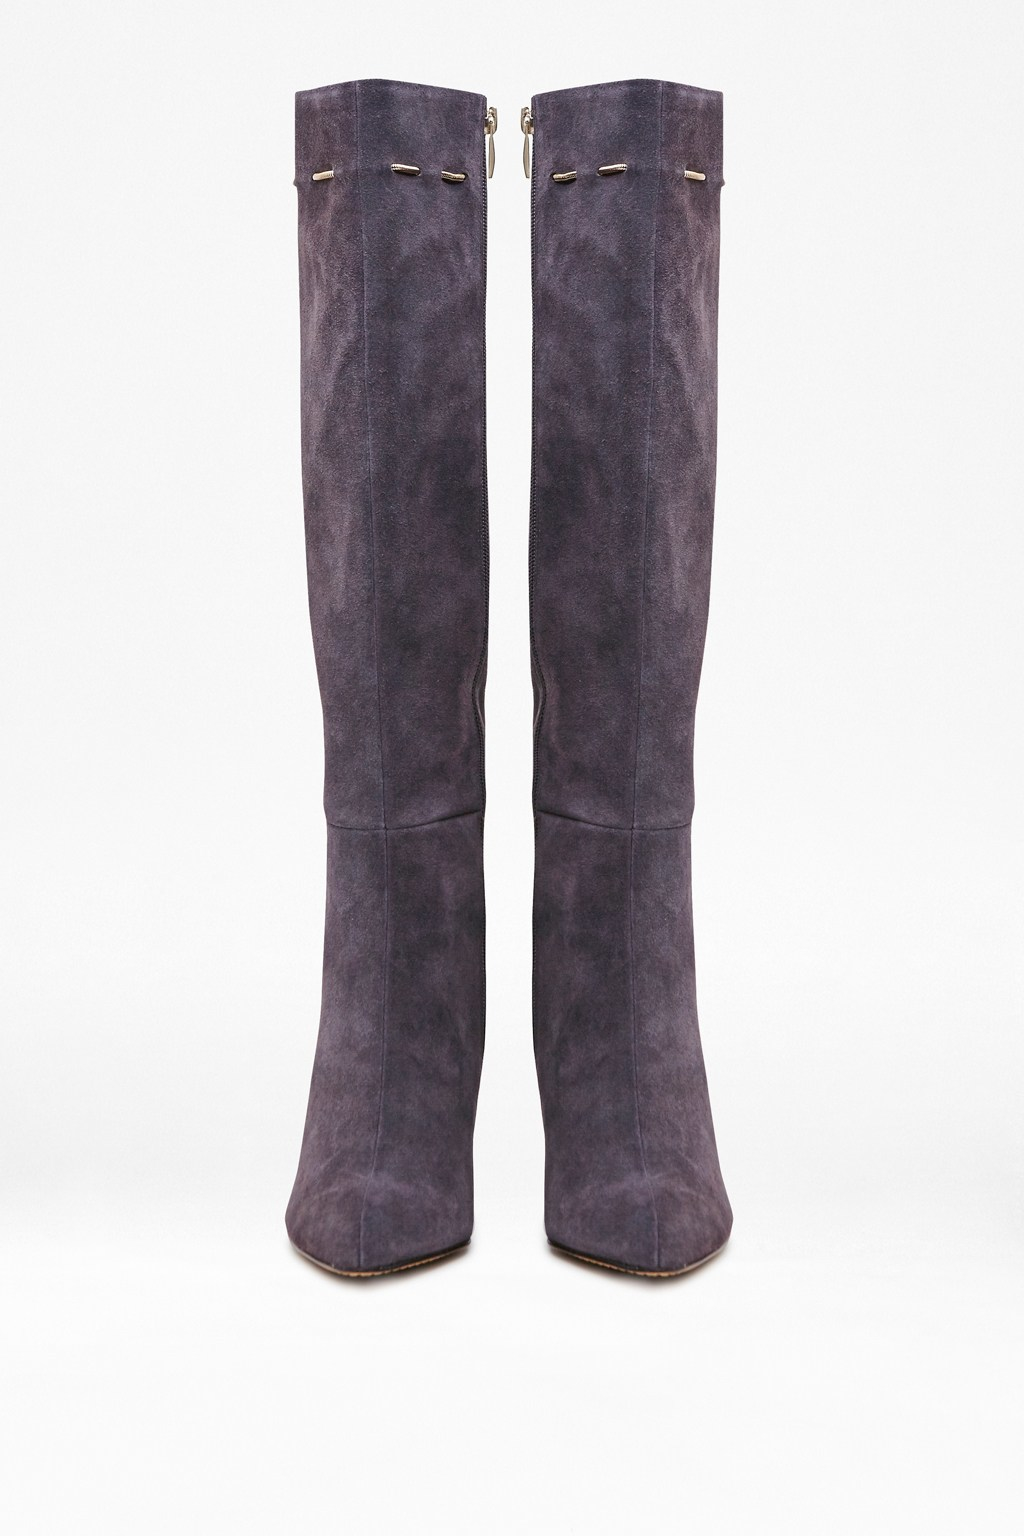 French connection knee high boots